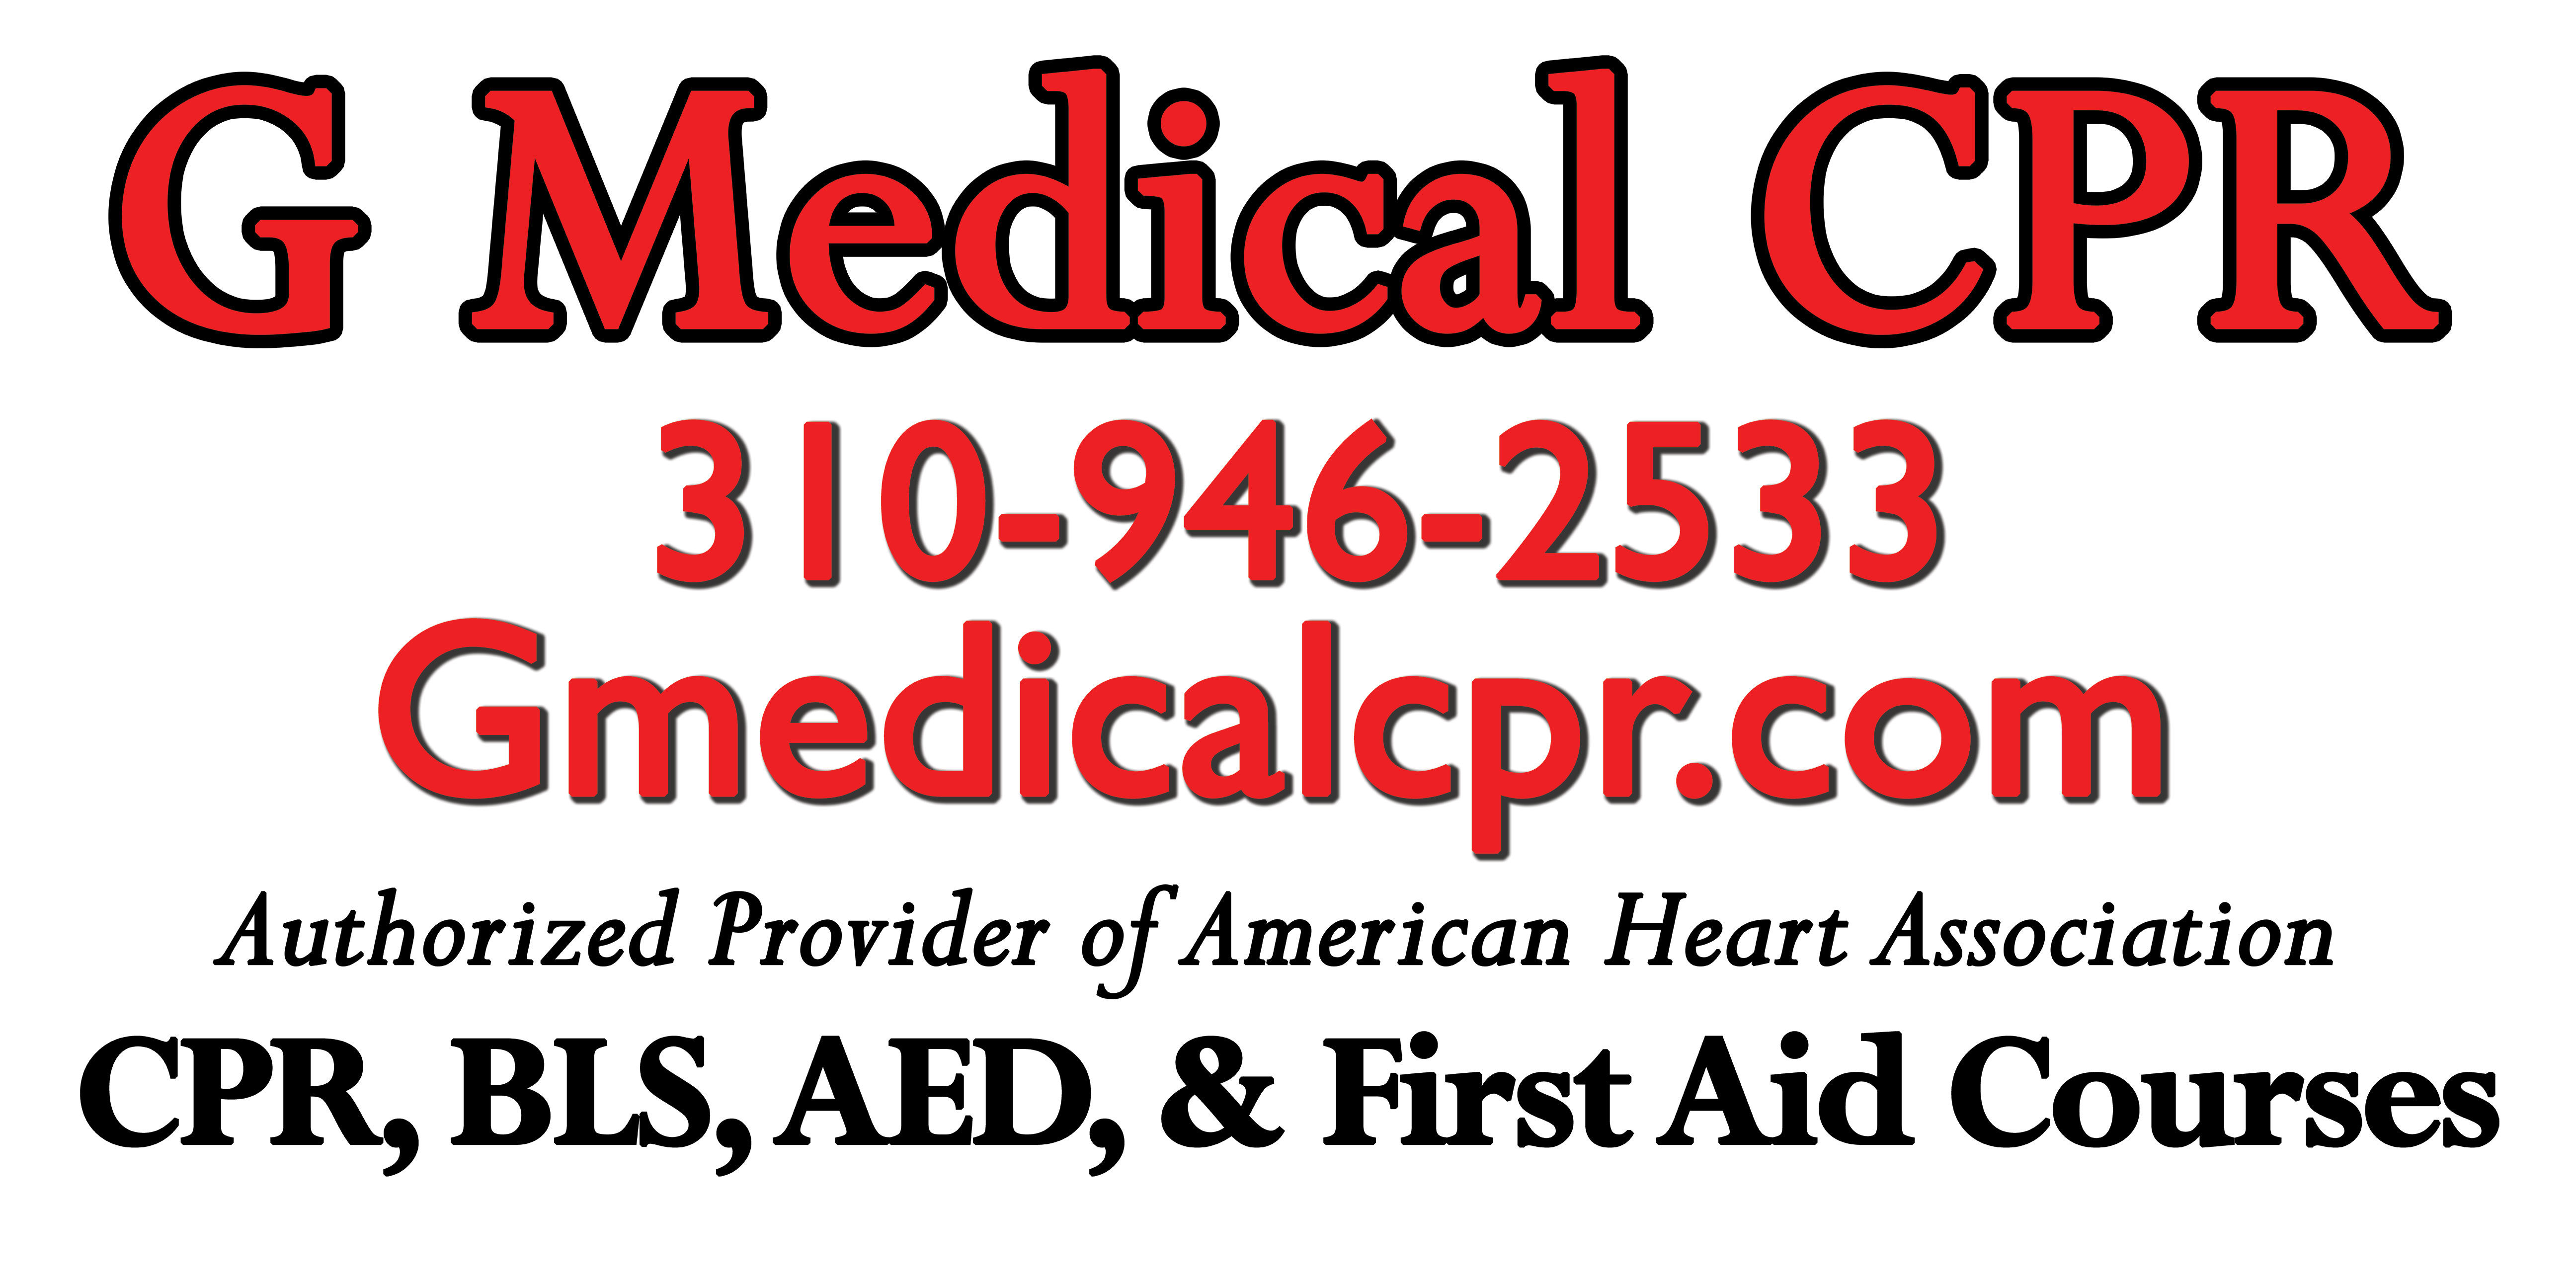 G Medical Cpr In Inglewood Ca Lessons